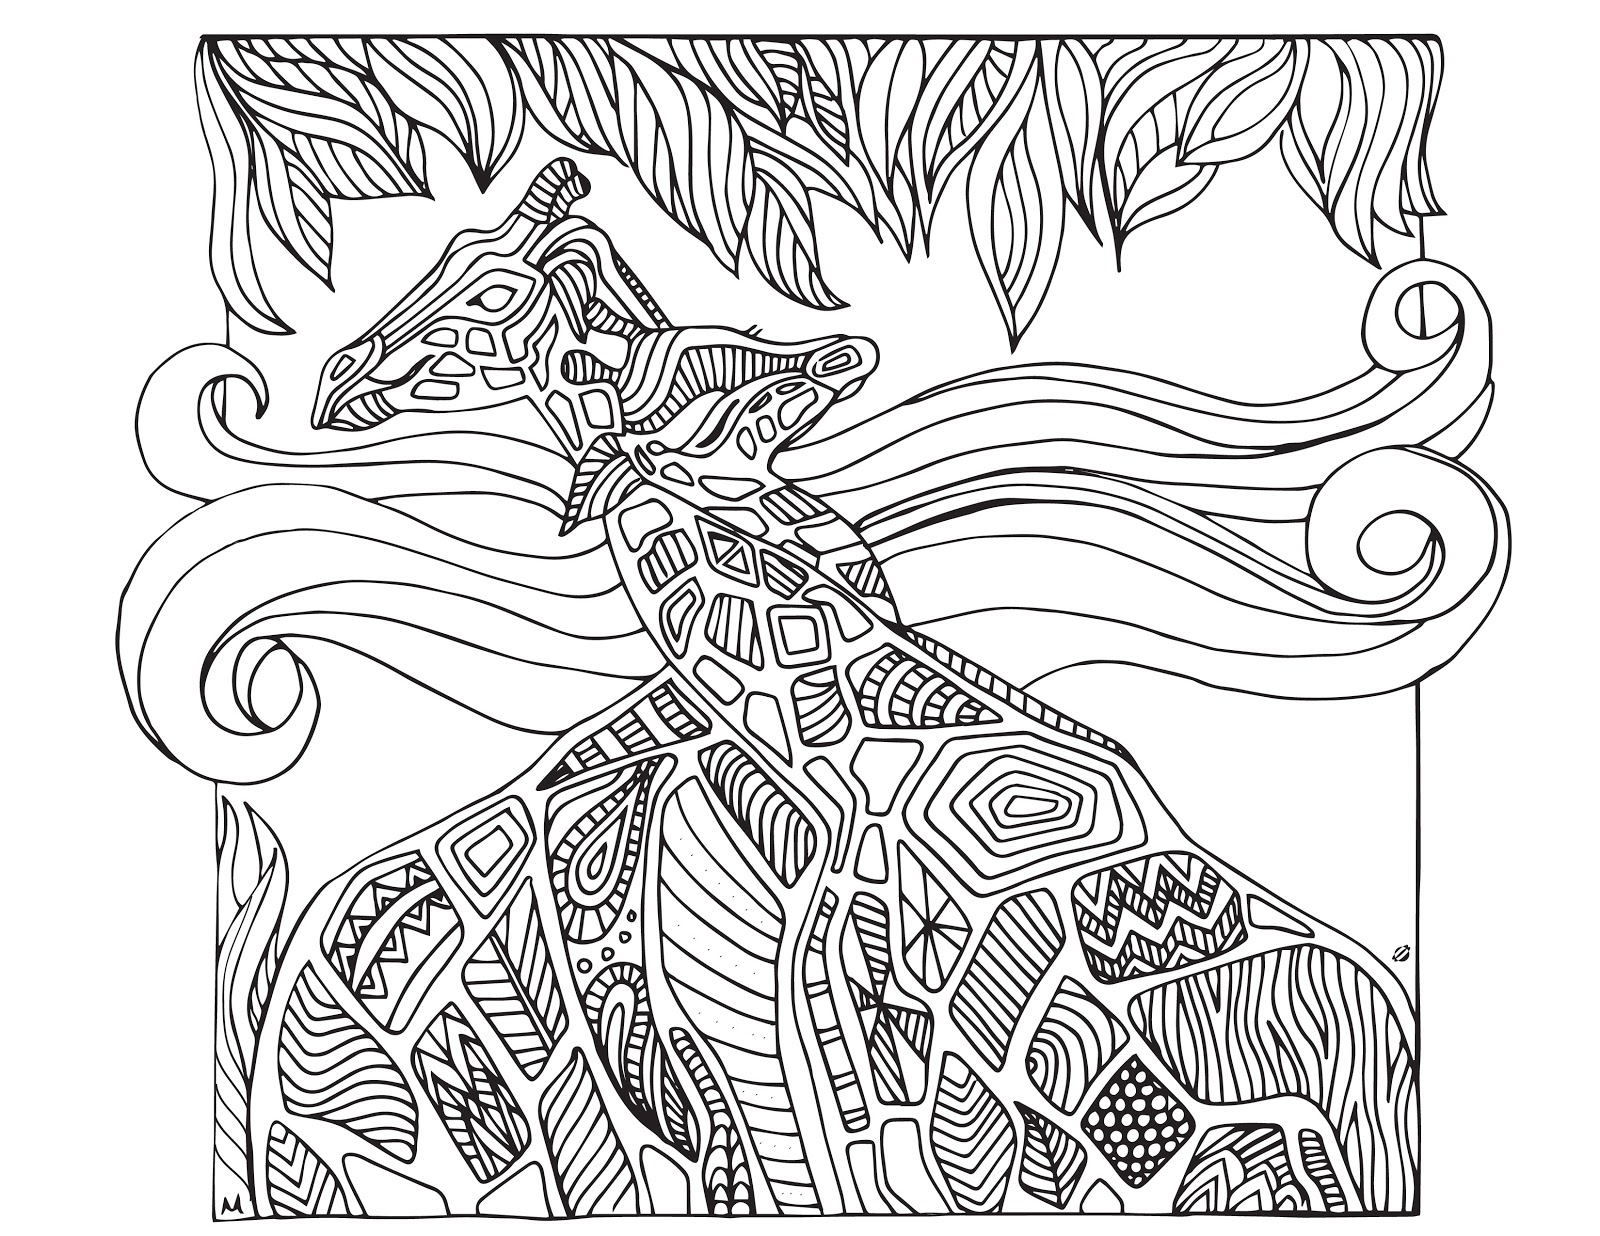 Jaws Coloring Pages At Getcolorings